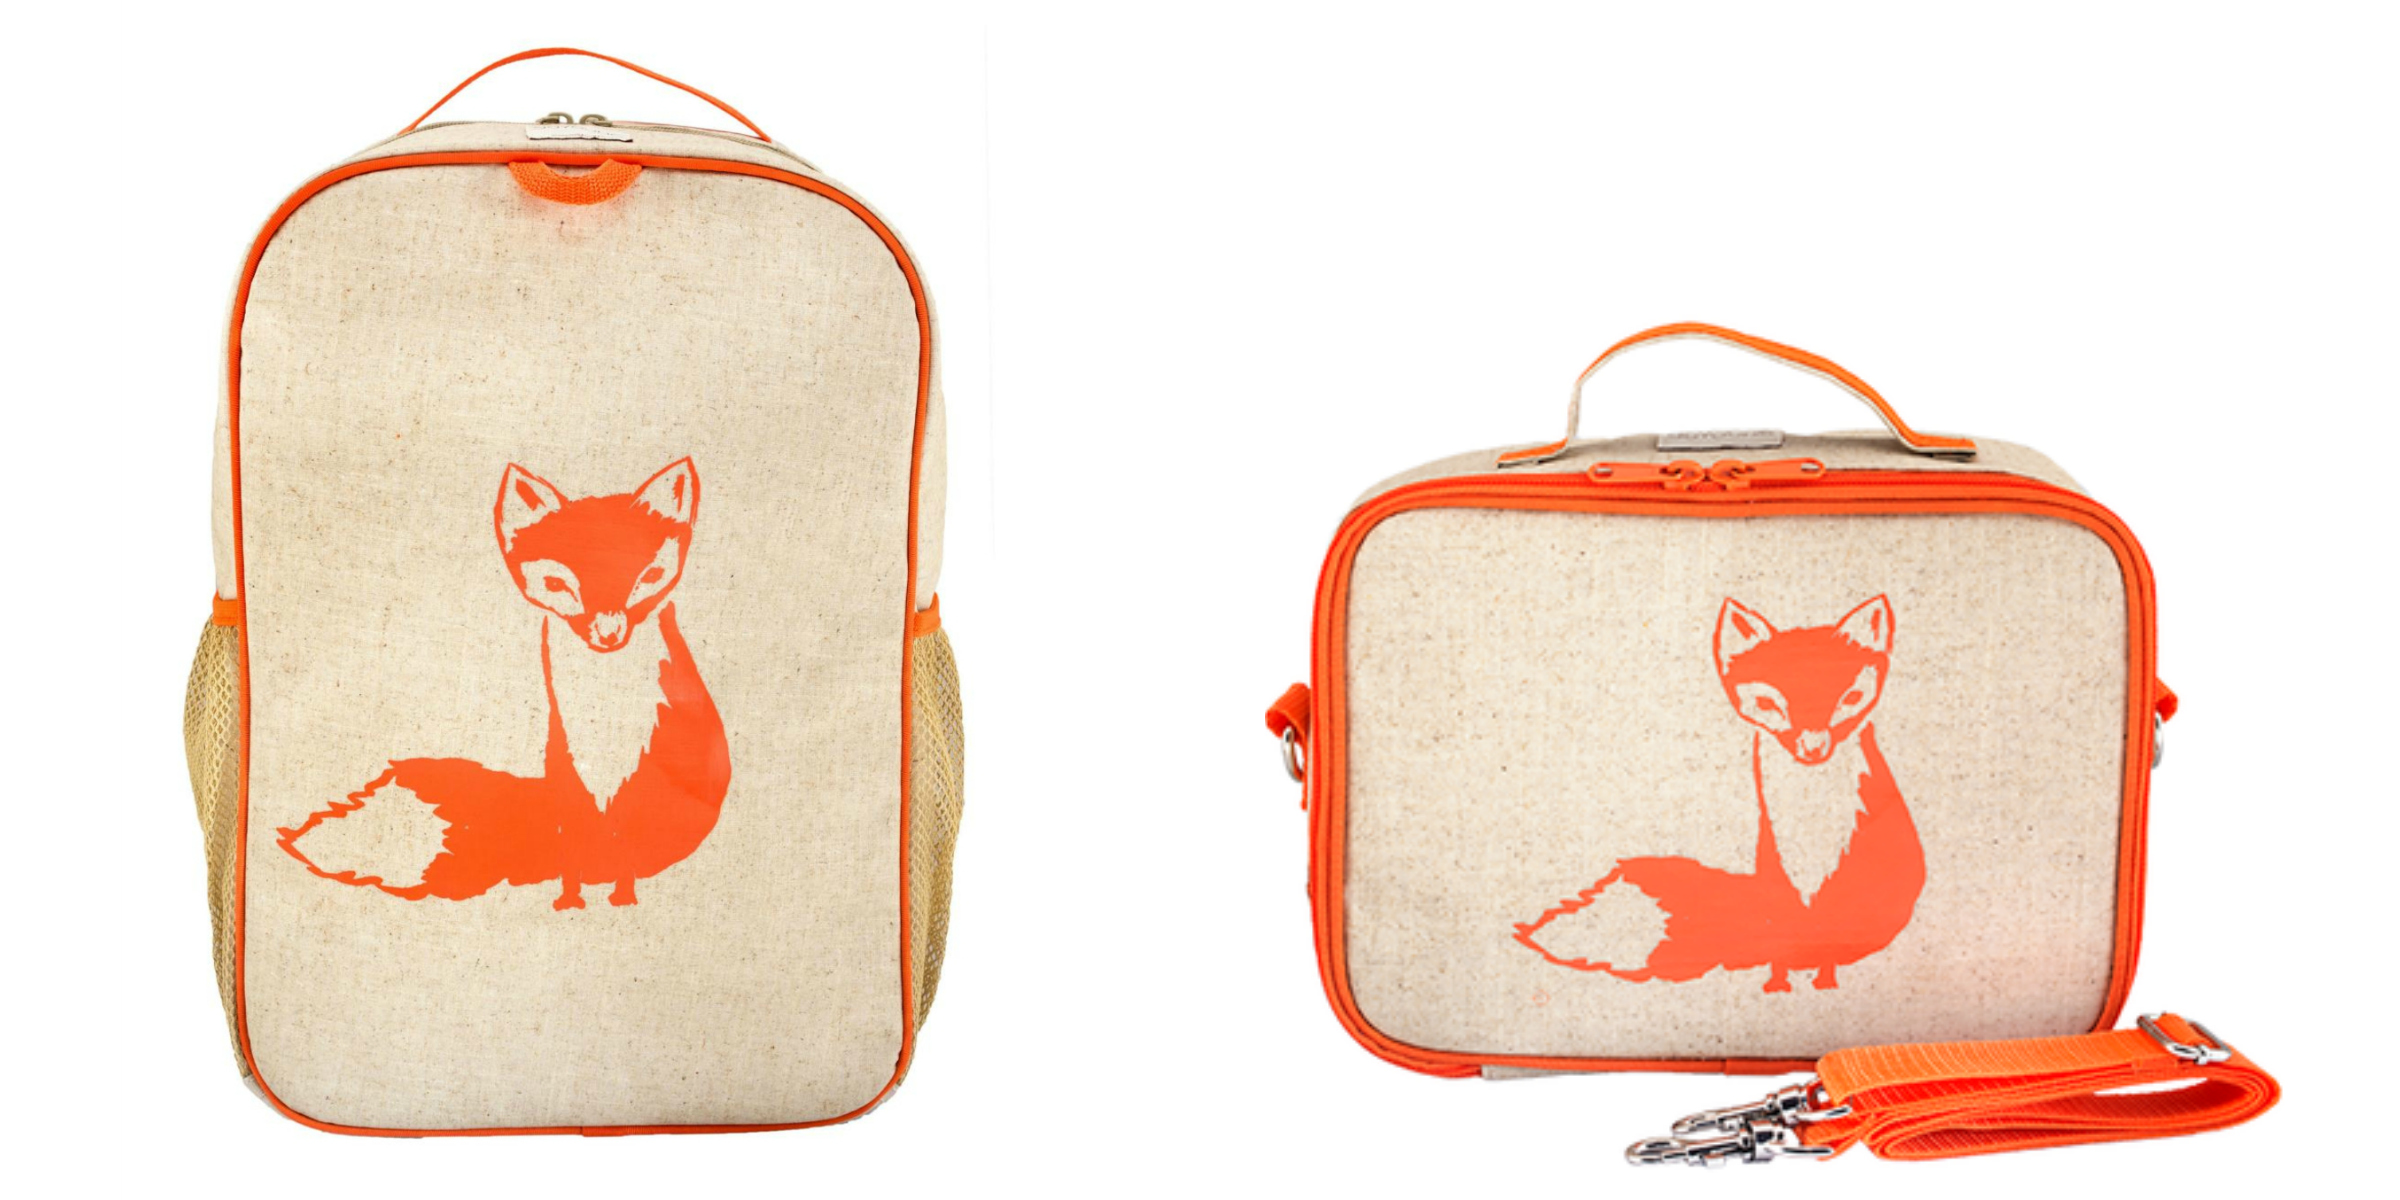 SoYoung Fox Backpack | SoYoung Fox Lunch Box | Back To School Bags for Kids